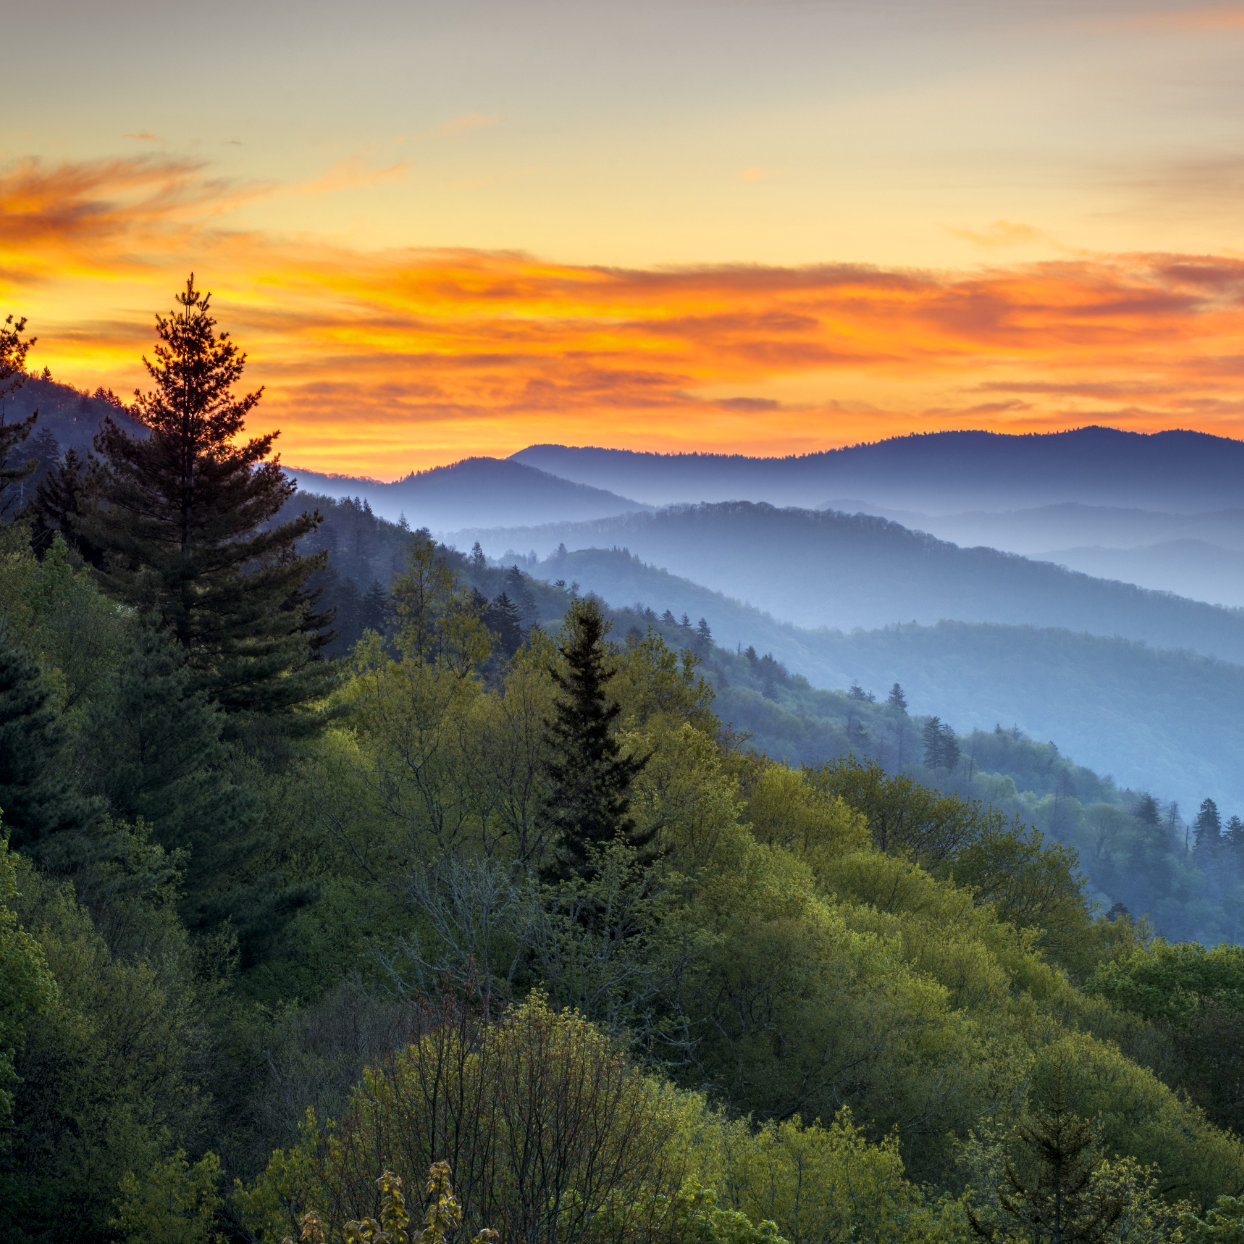 Blue ridge mountains covered by mist and an orange sky